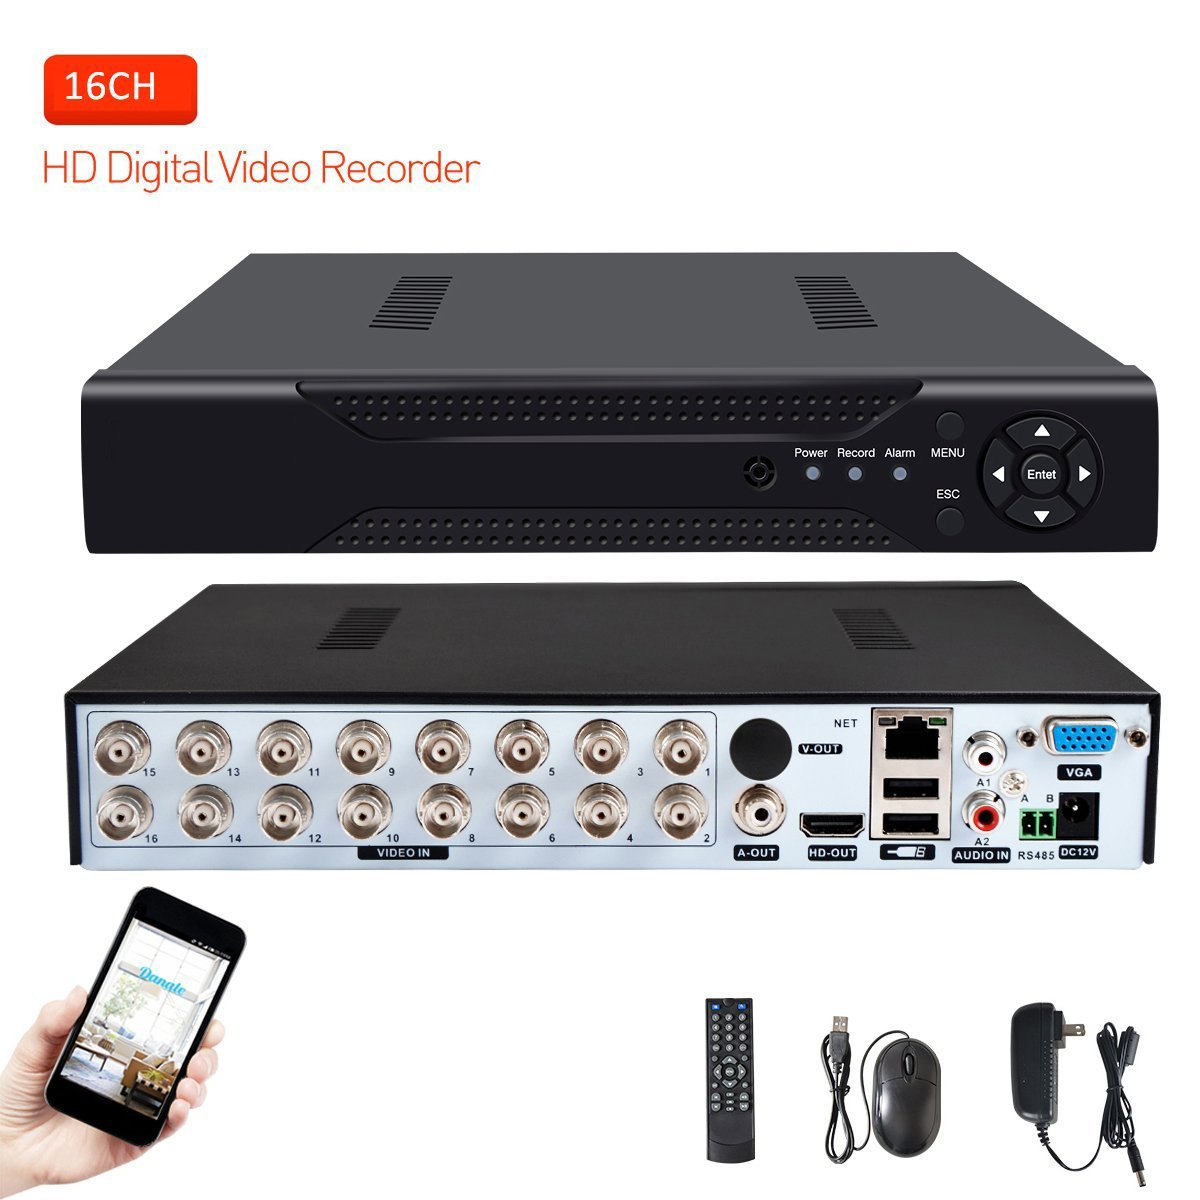 16 Channels DVR Recorder Hybrid DVR H.264 CCTV Security Camera System Digital Video Recorder(No hard drive included)